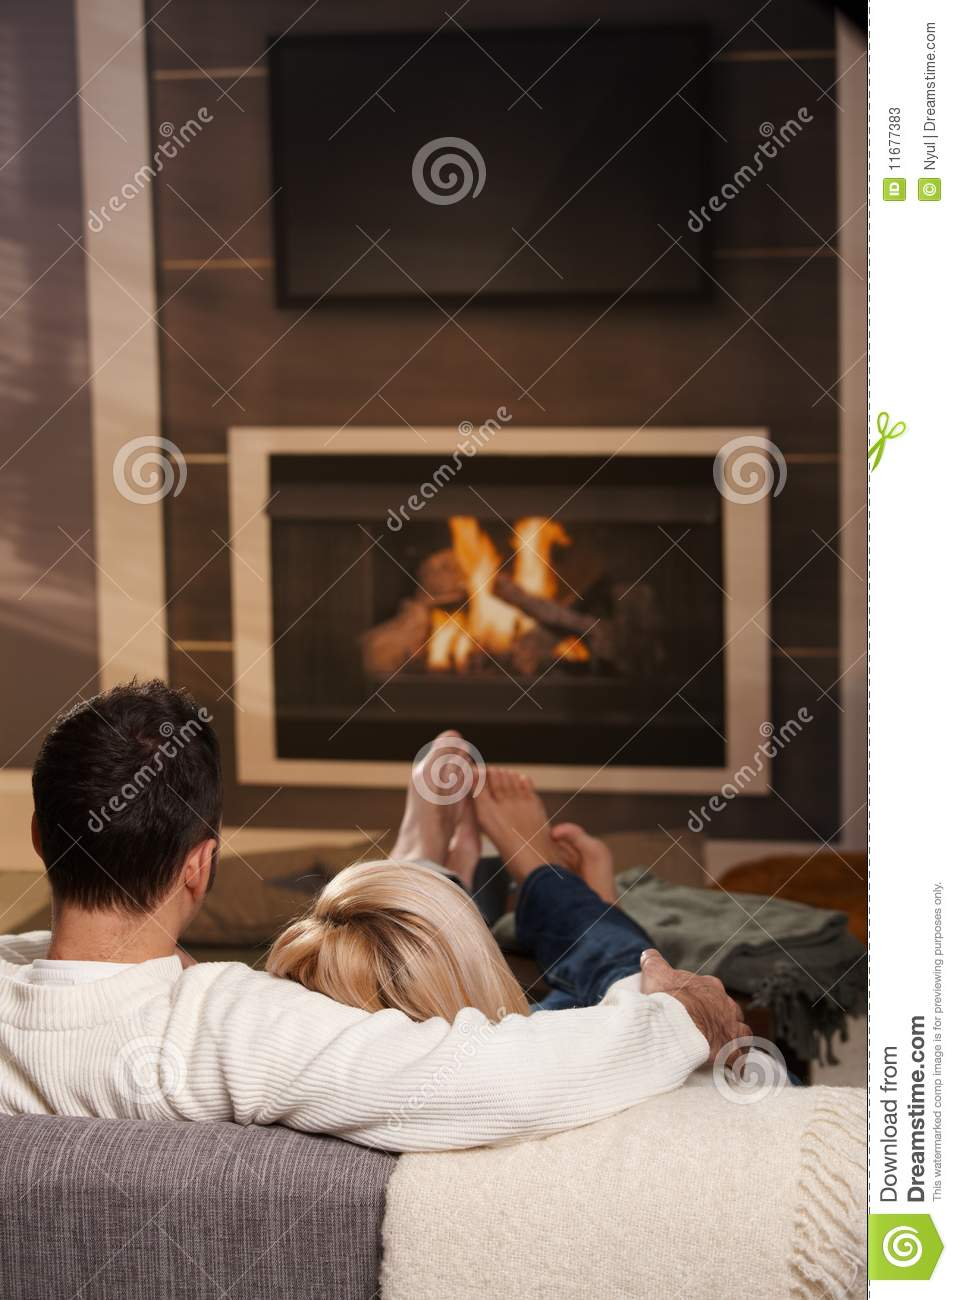 Couple Relaxing In Front Of Fireplace Man Looking At Woman Stock Man Sitting At Fireplace Stock Photos - Image: 11677383